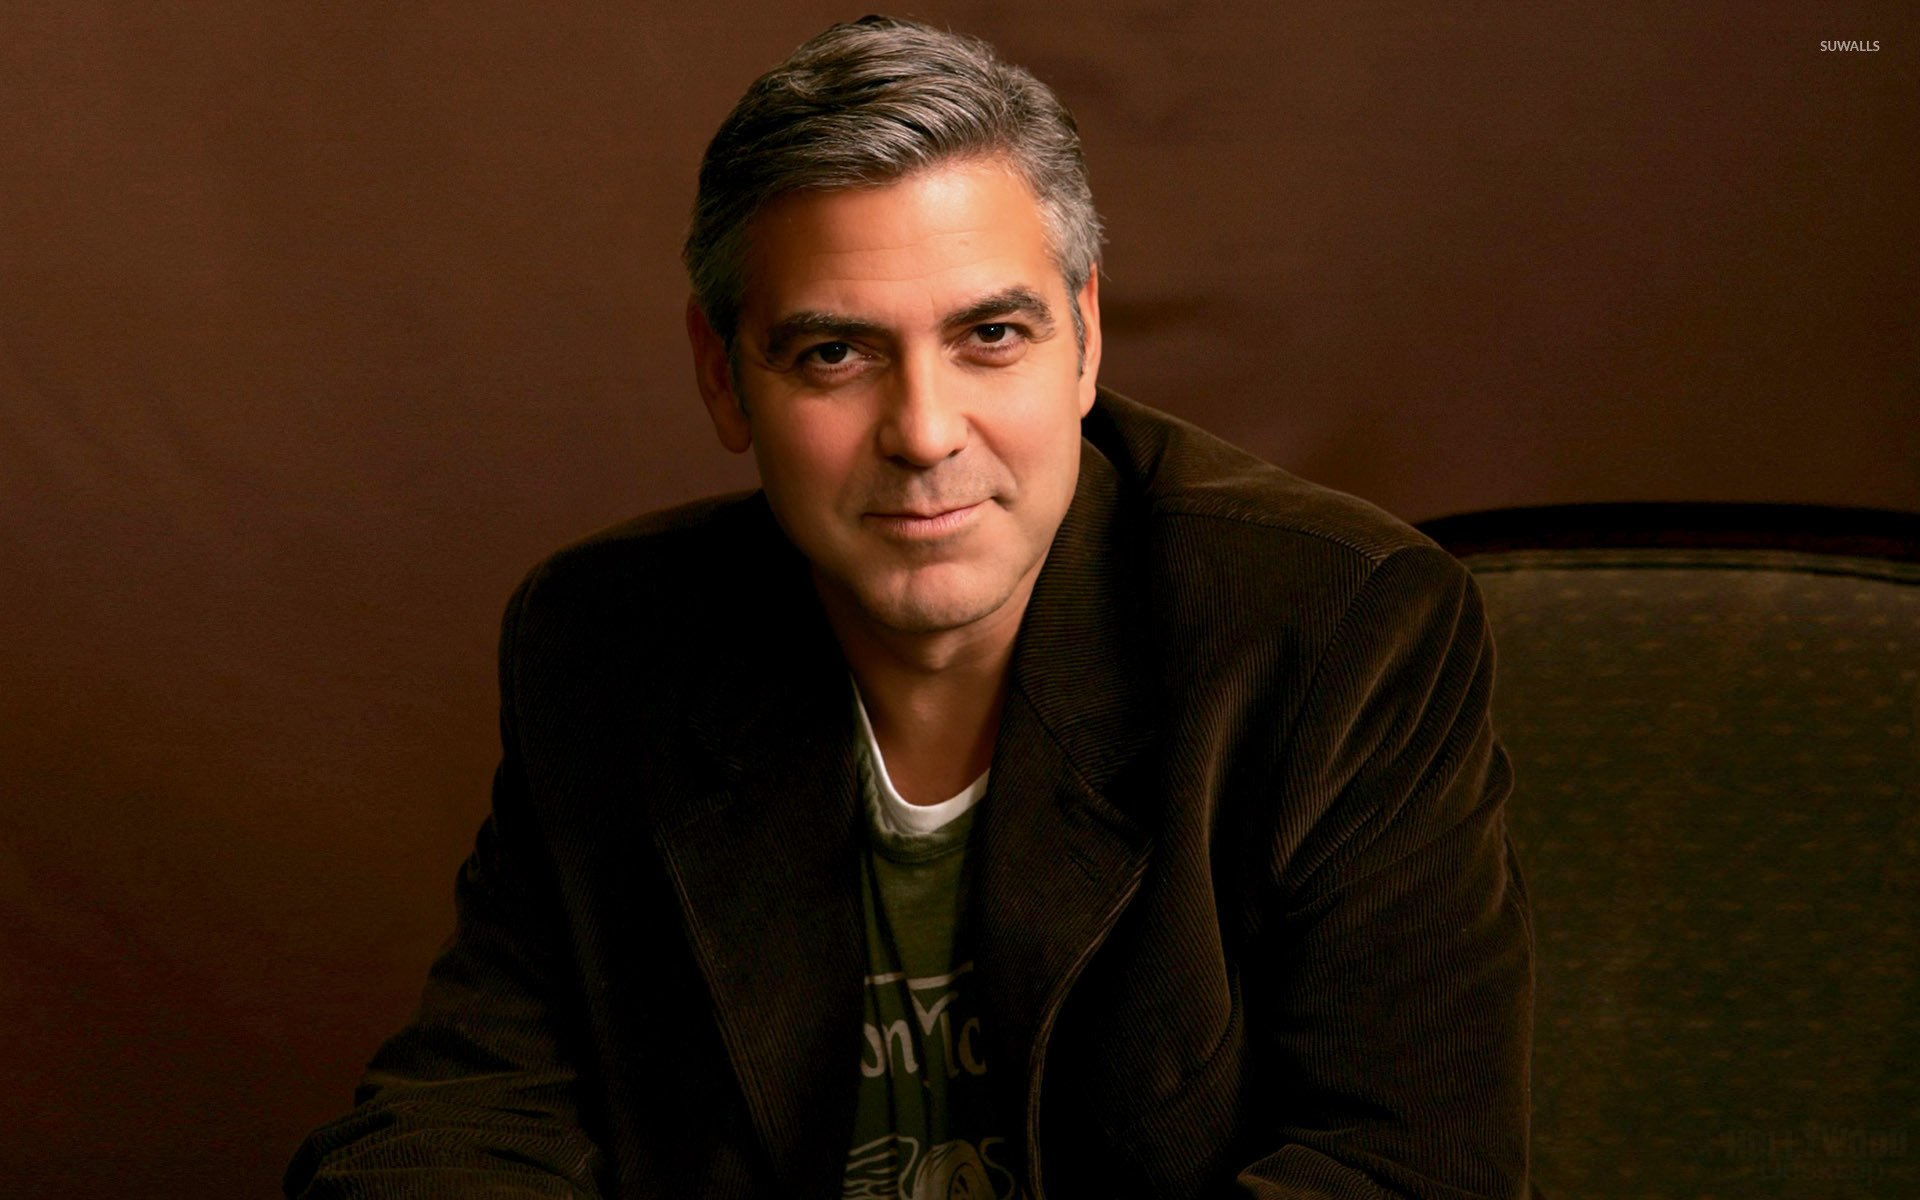 George Clooney wallpaper 1920x1200